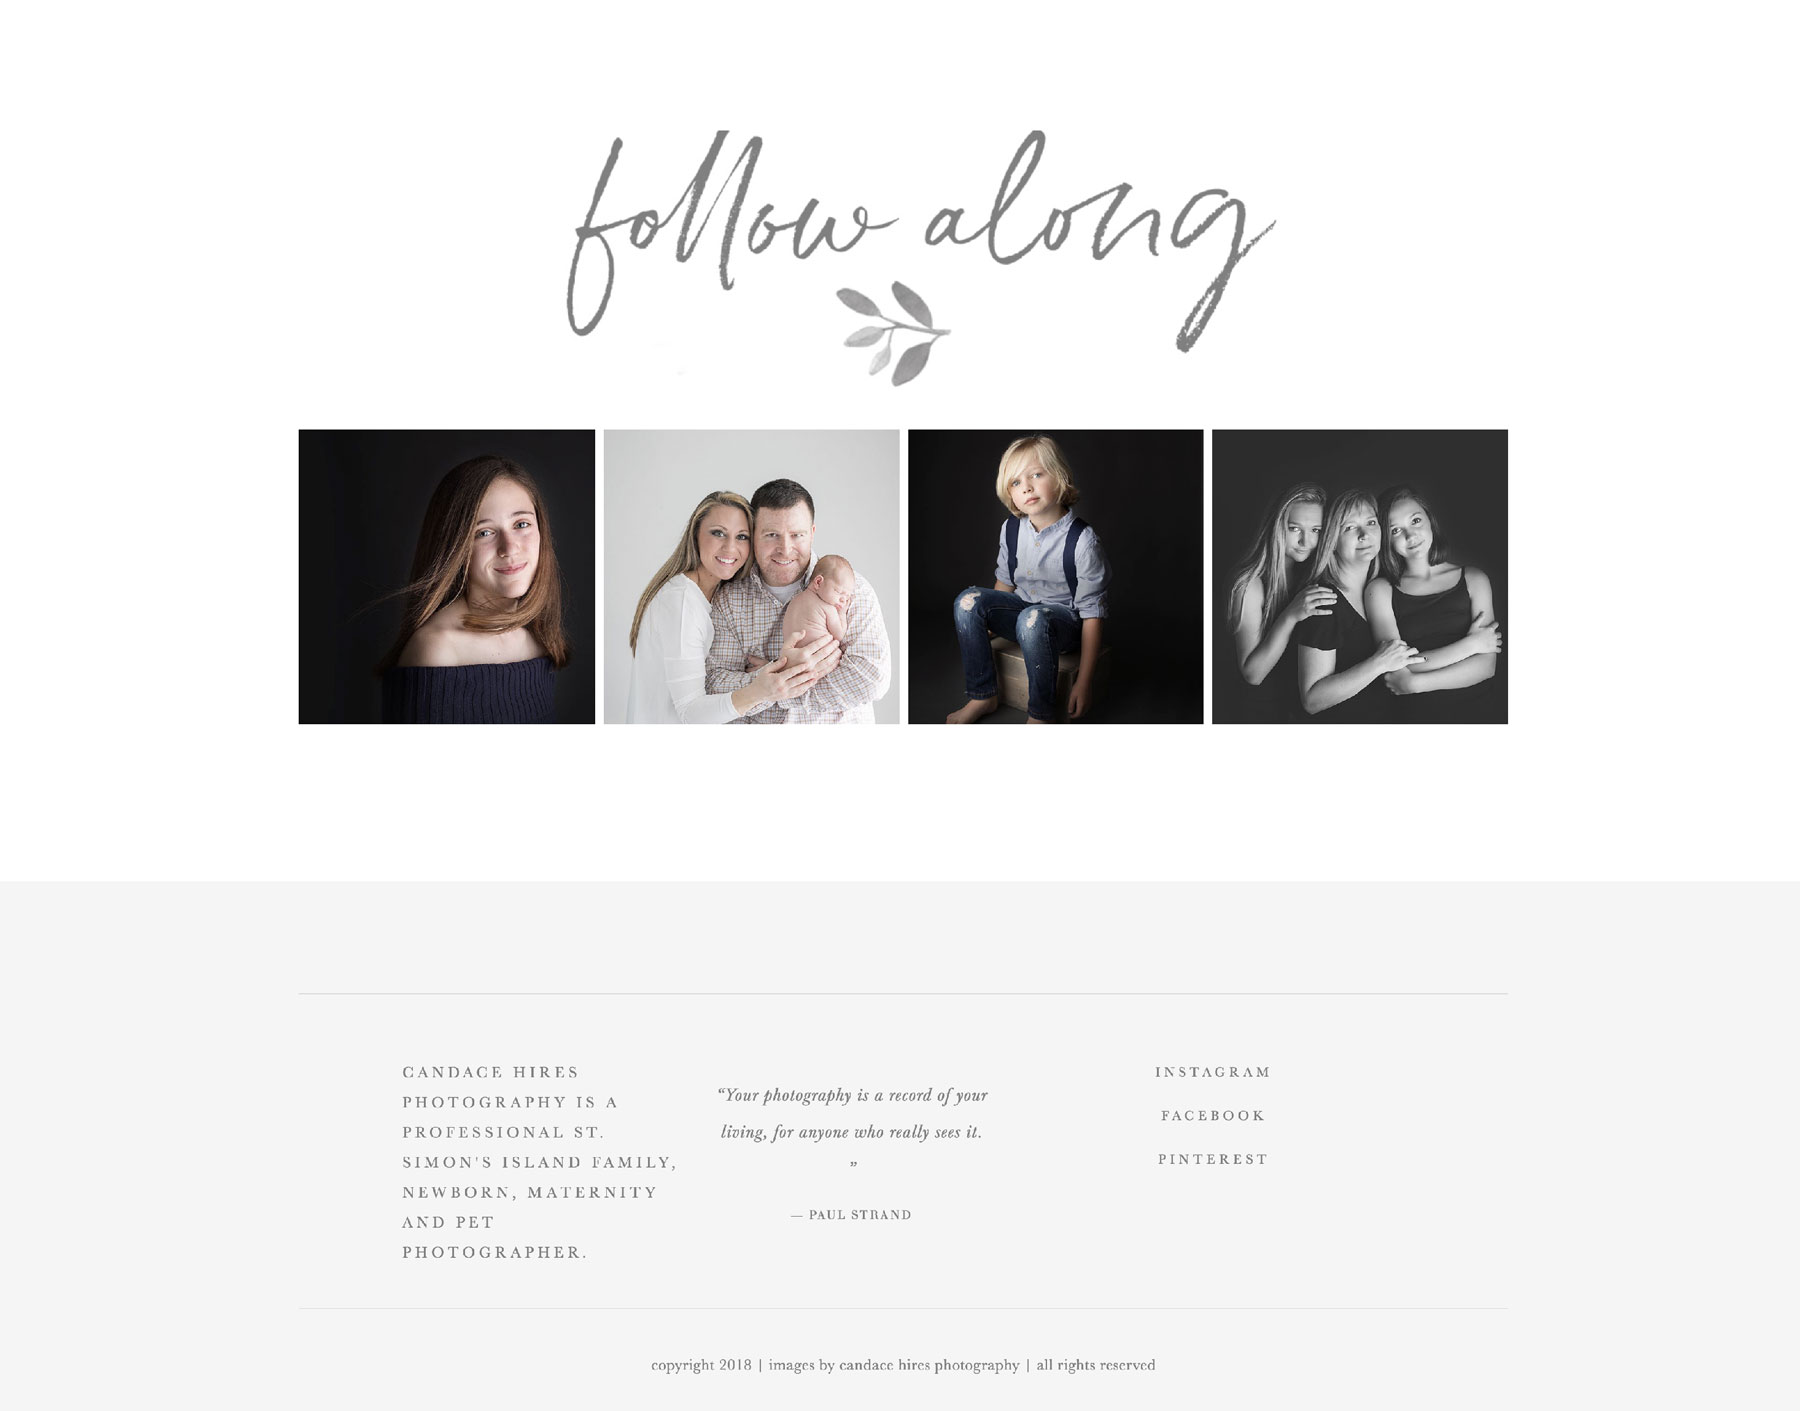 website ideas for photographers | squarespace templates | bittersweet design boutique